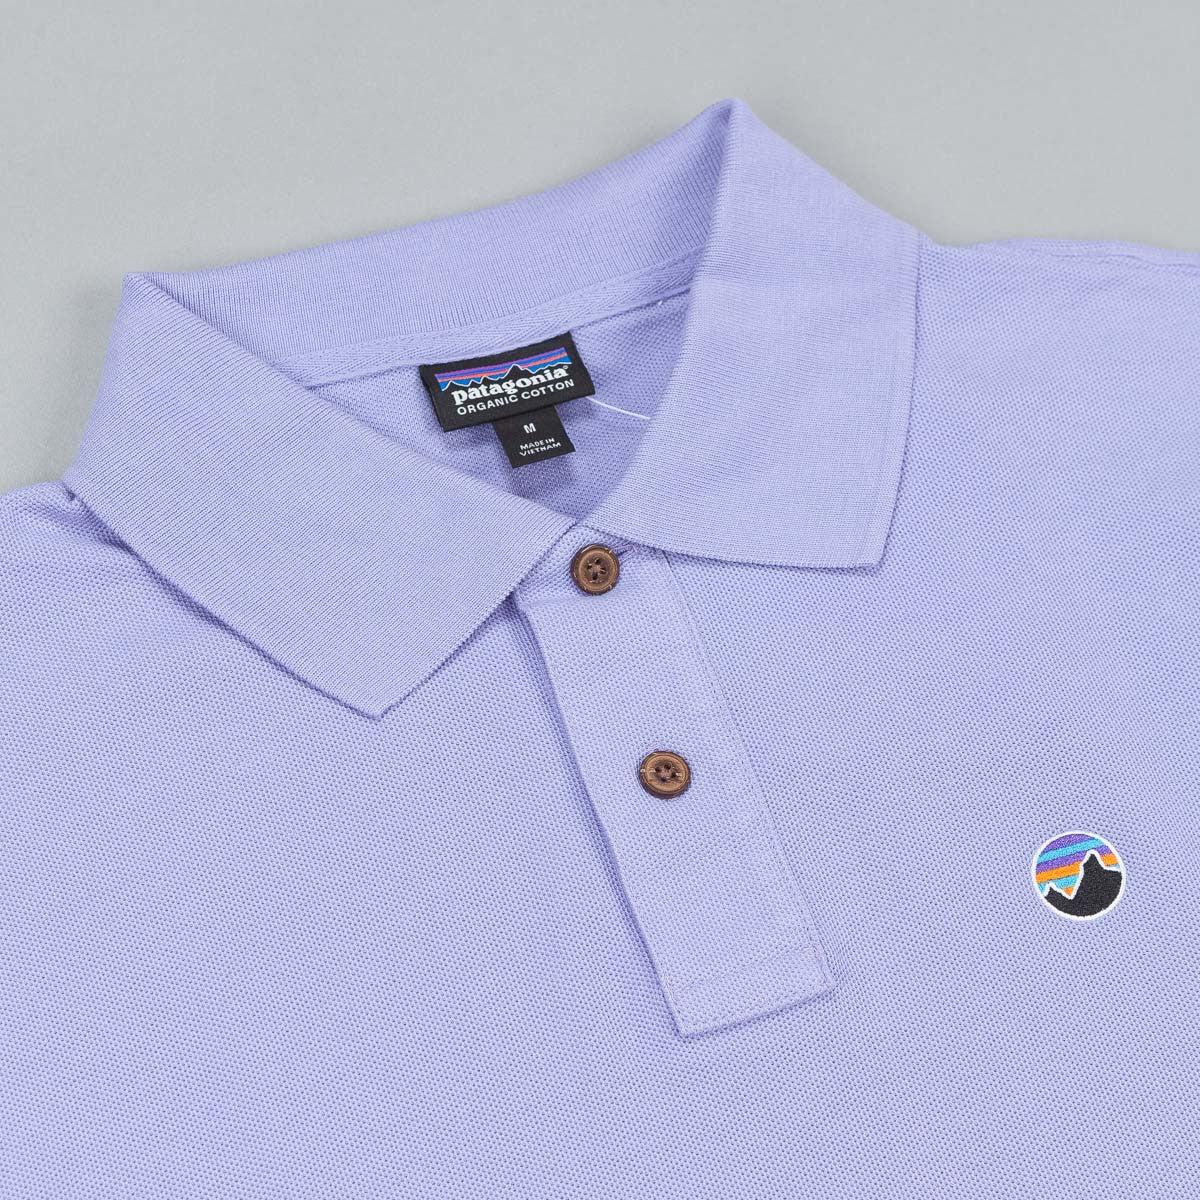 Patagonia Fitz Roy Emblem Polo Shirt - Ploy Purple